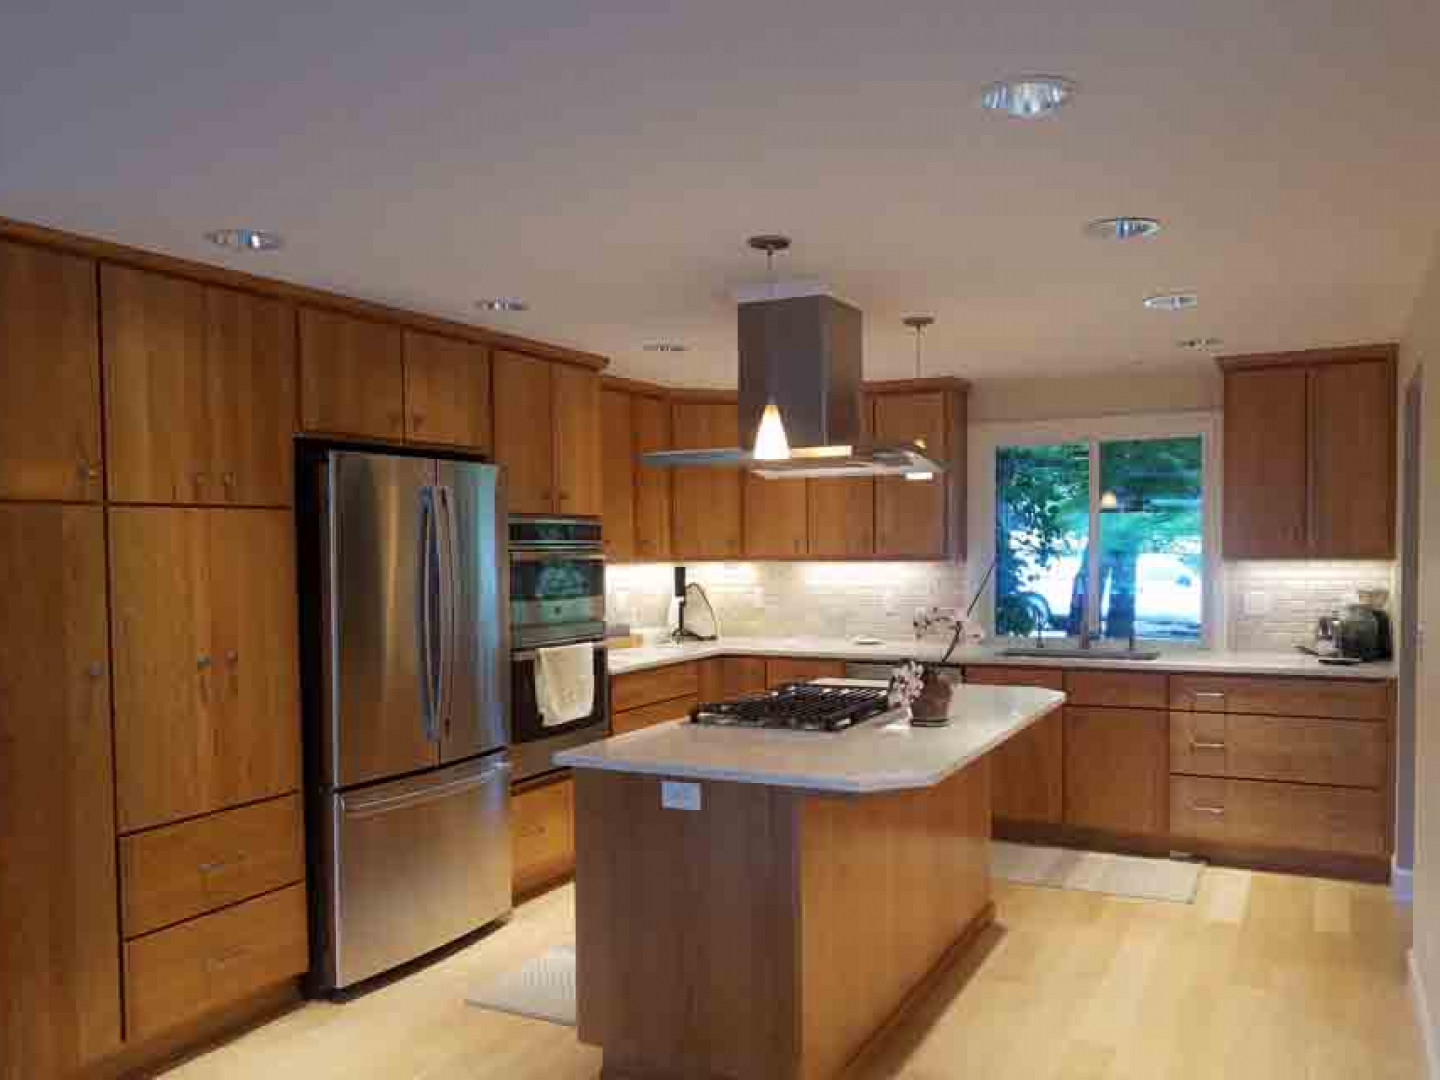 Create lasting memories in your custom kitchen